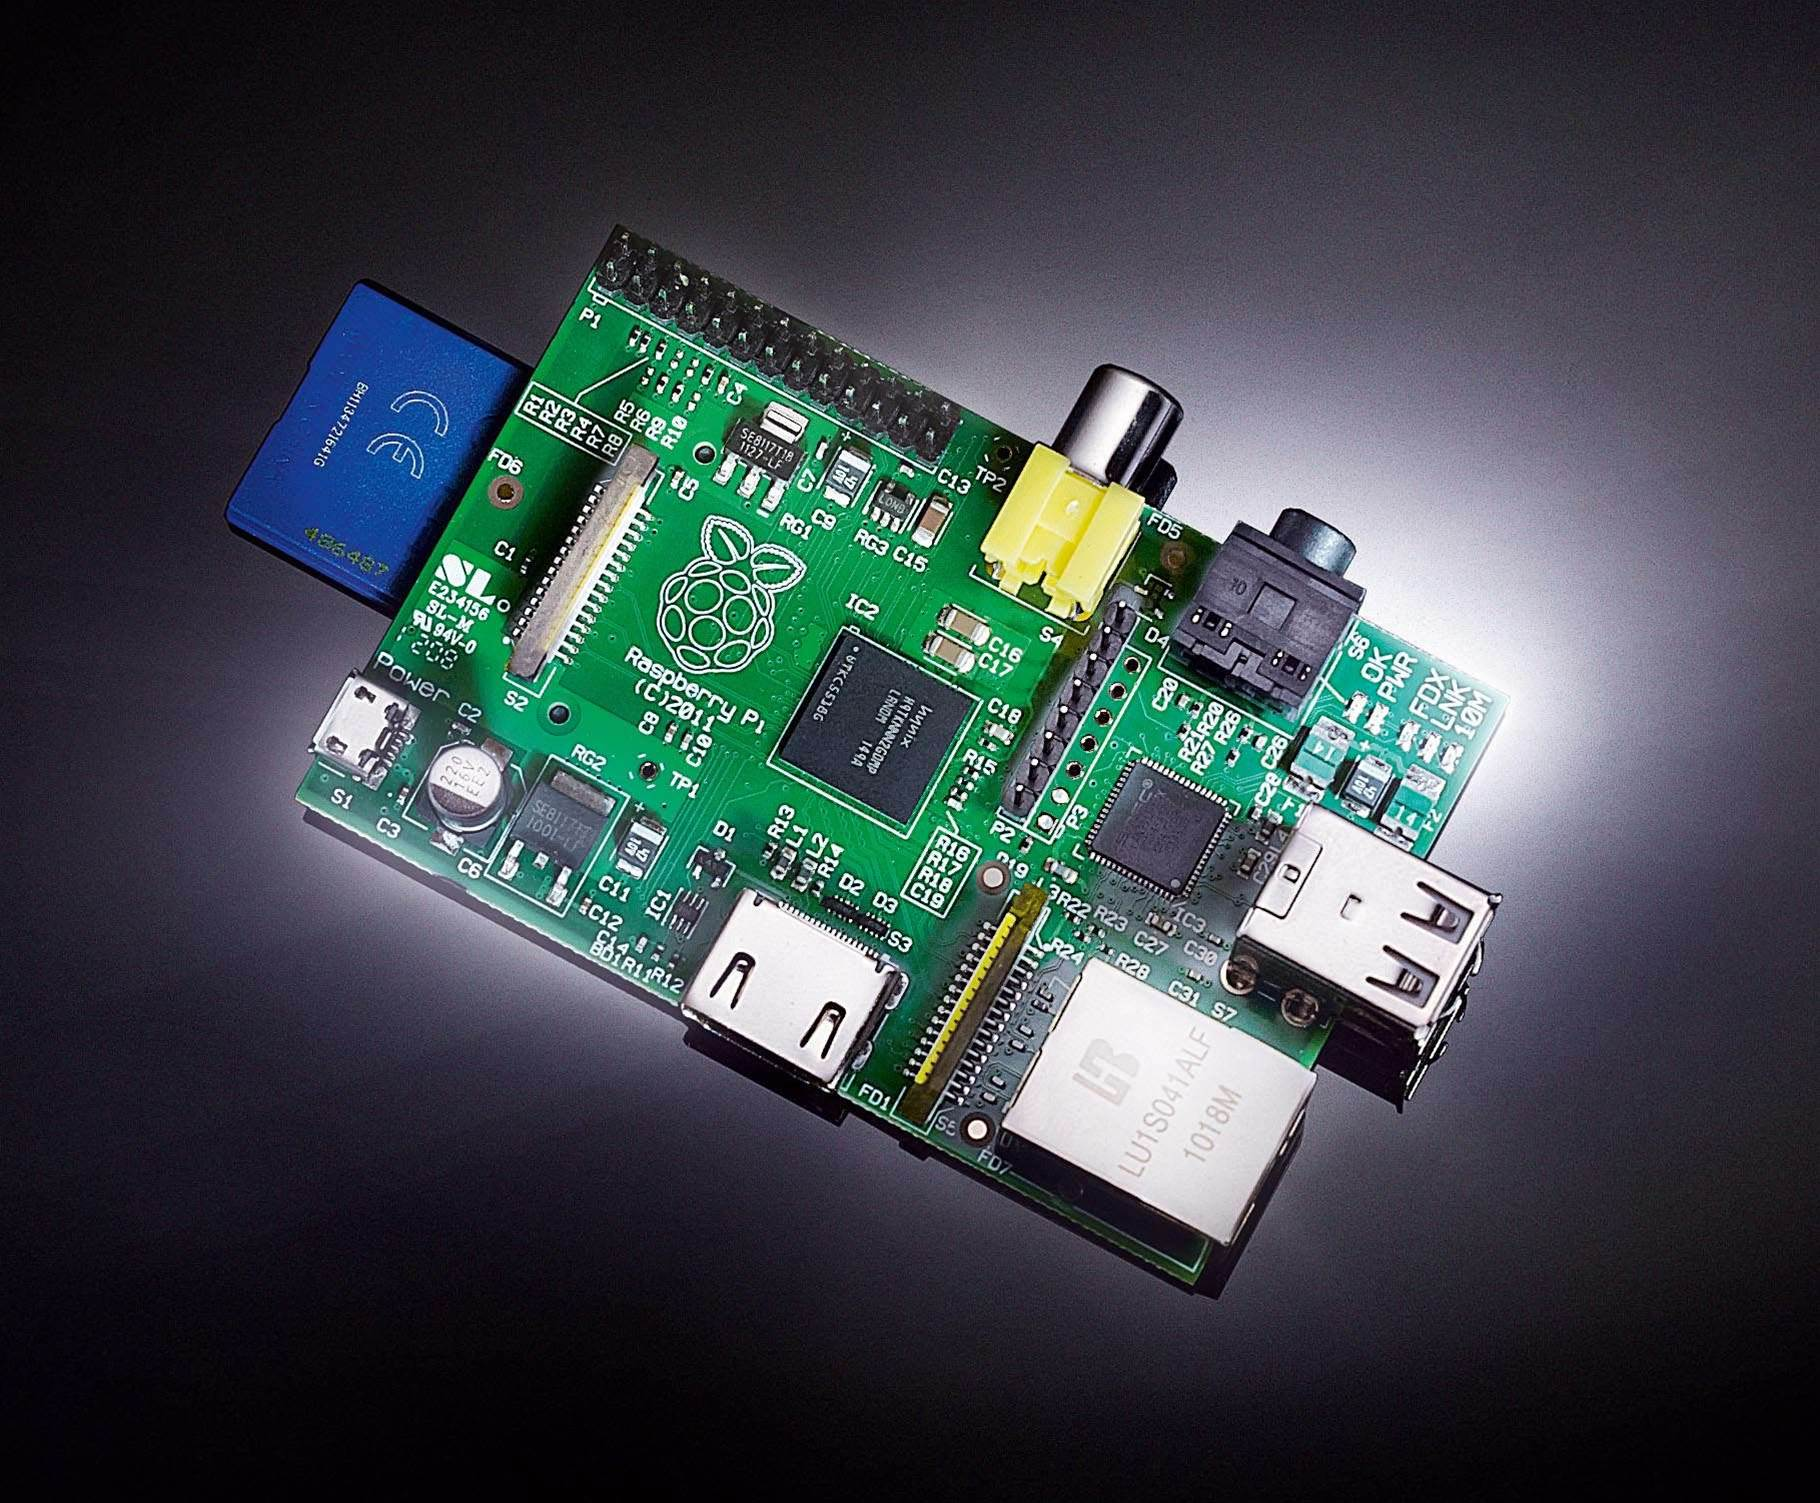 Review: Raspberry Pi (Model B)